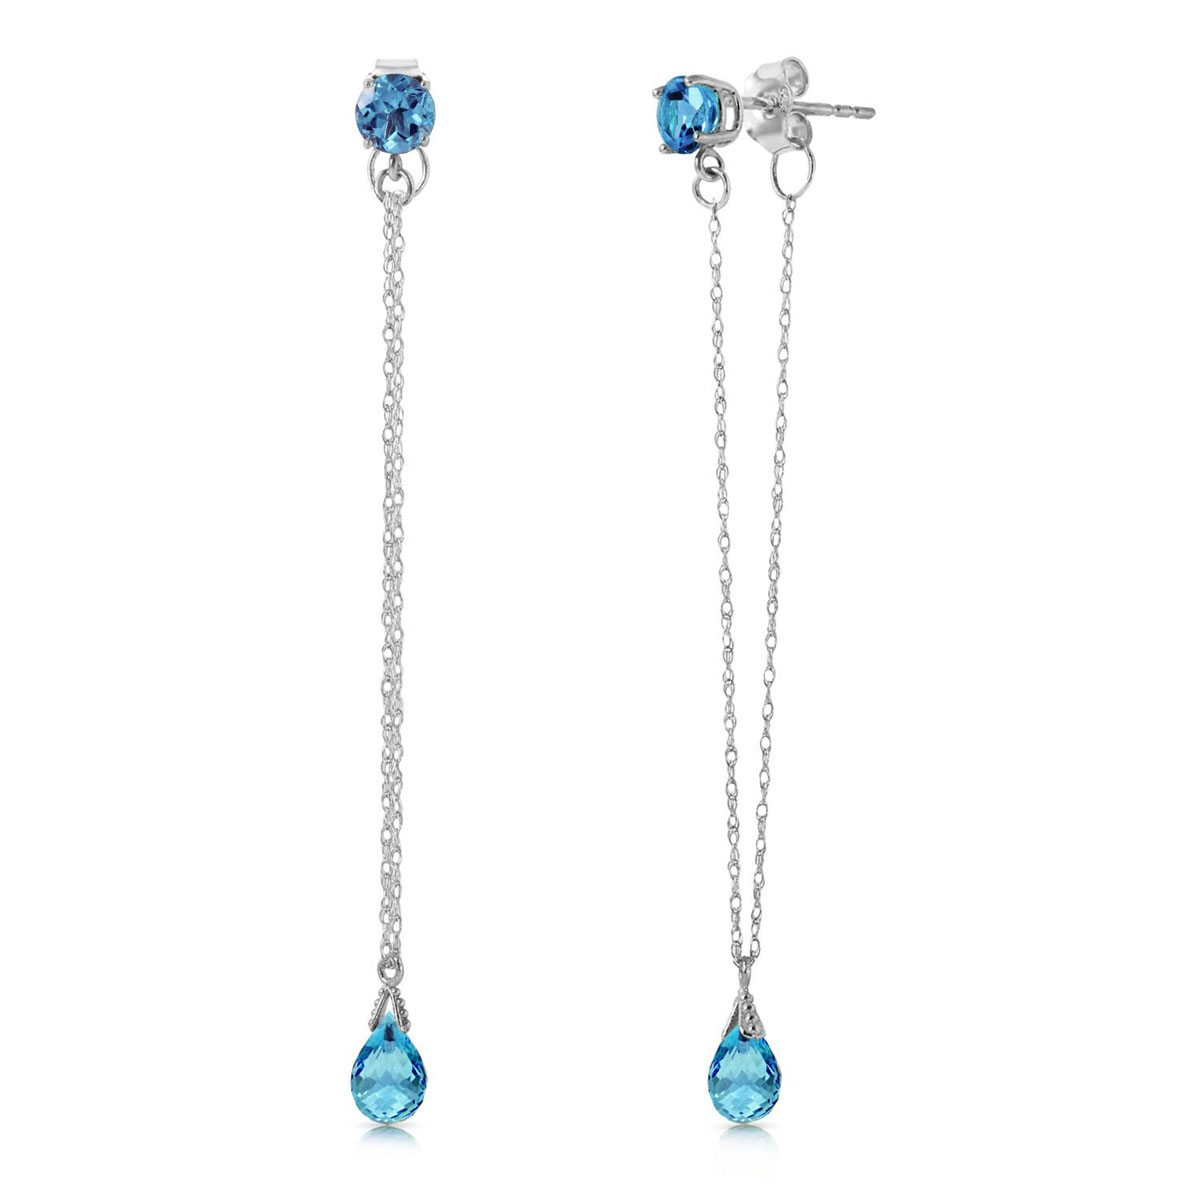 Blue Topaz Monte Carlo Drop Earrings 3.15 ctw in 9ct White Gold